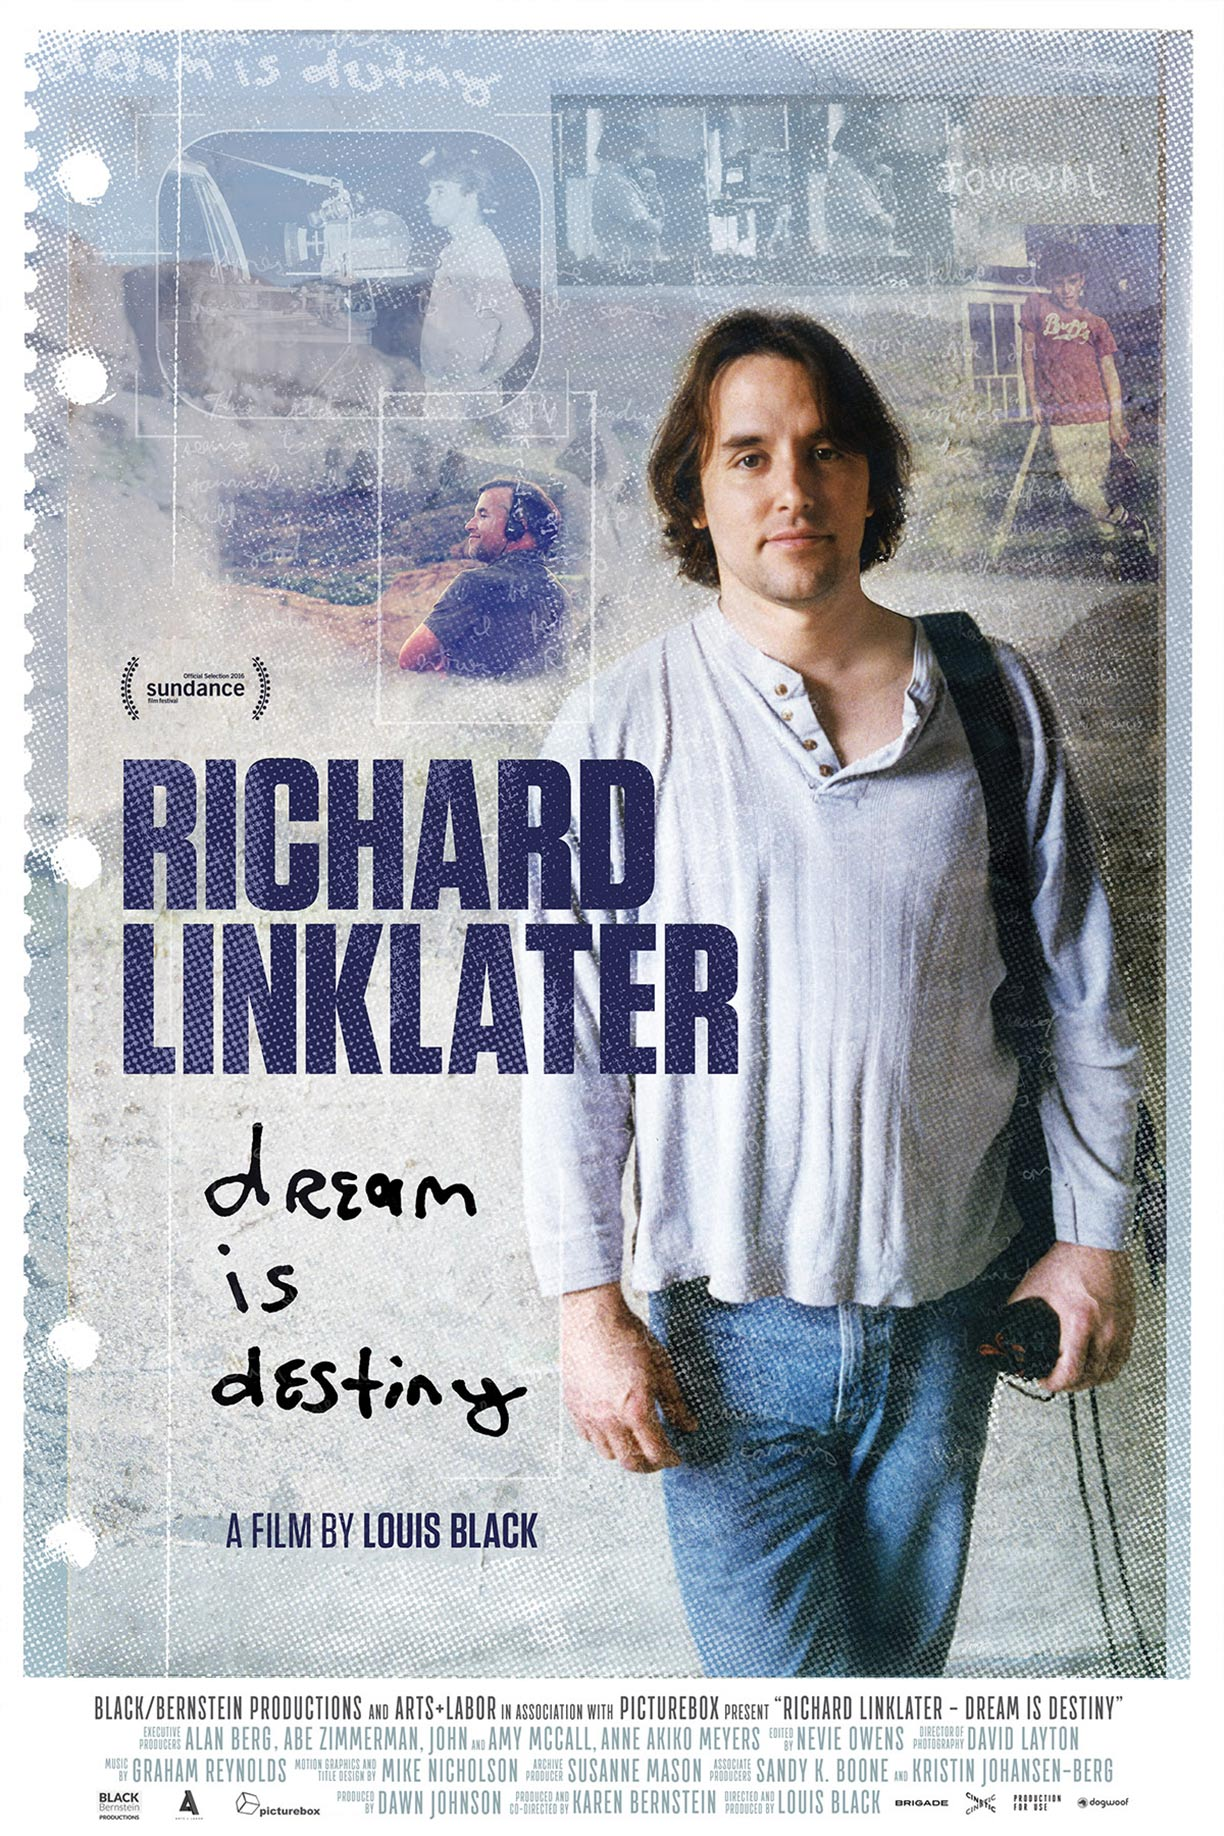 richard-linklater-dream-is-destiny-poster